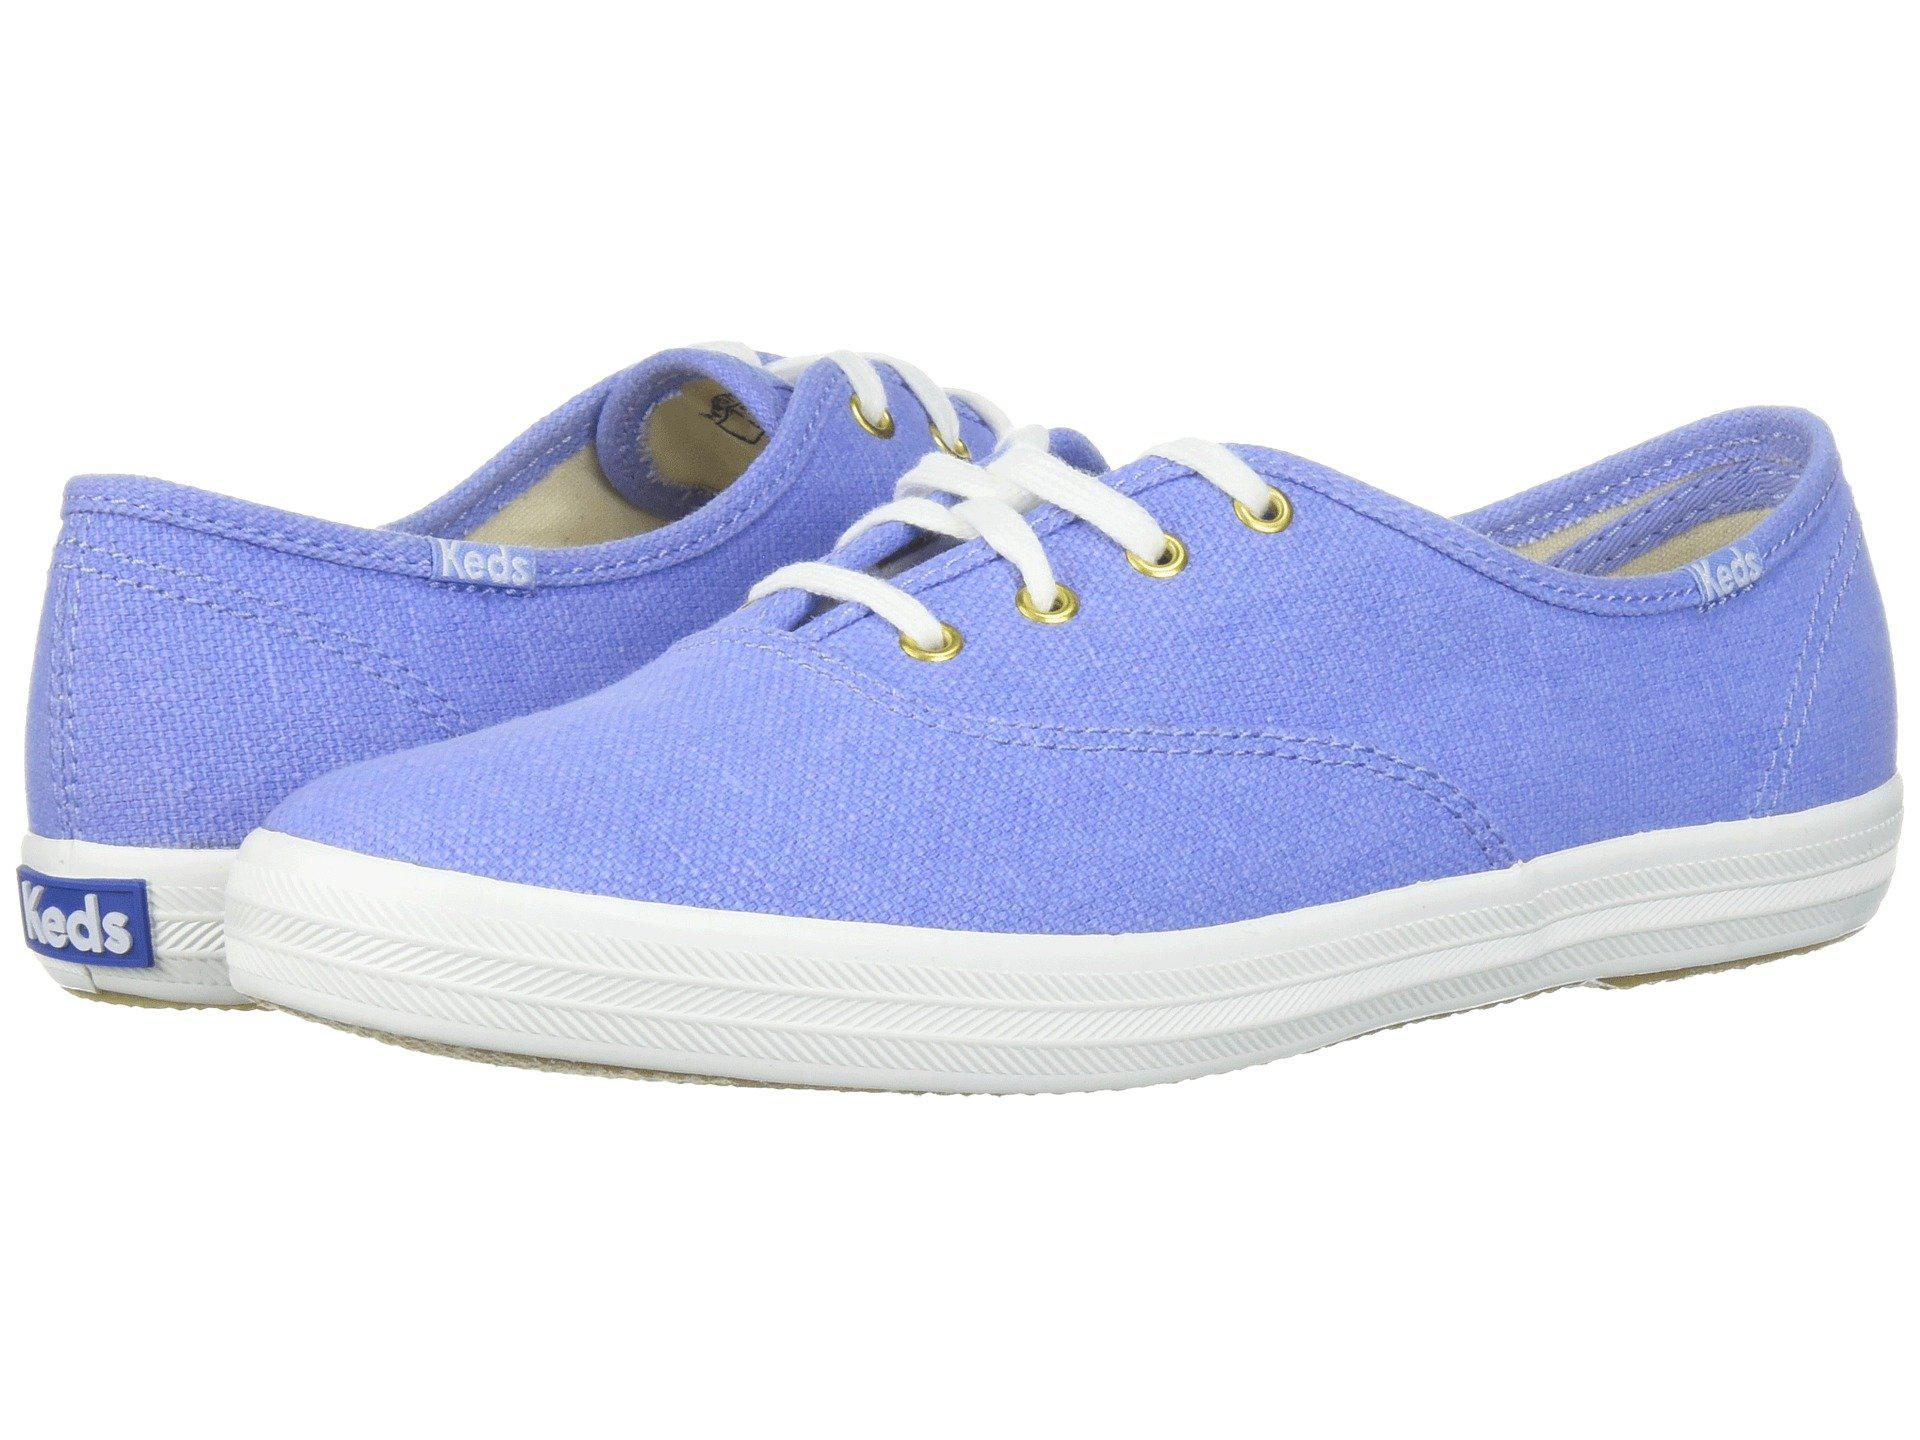 ce832a4b735d Lyst - Keds Champion Chalky Canvas in Blue - Save 44%